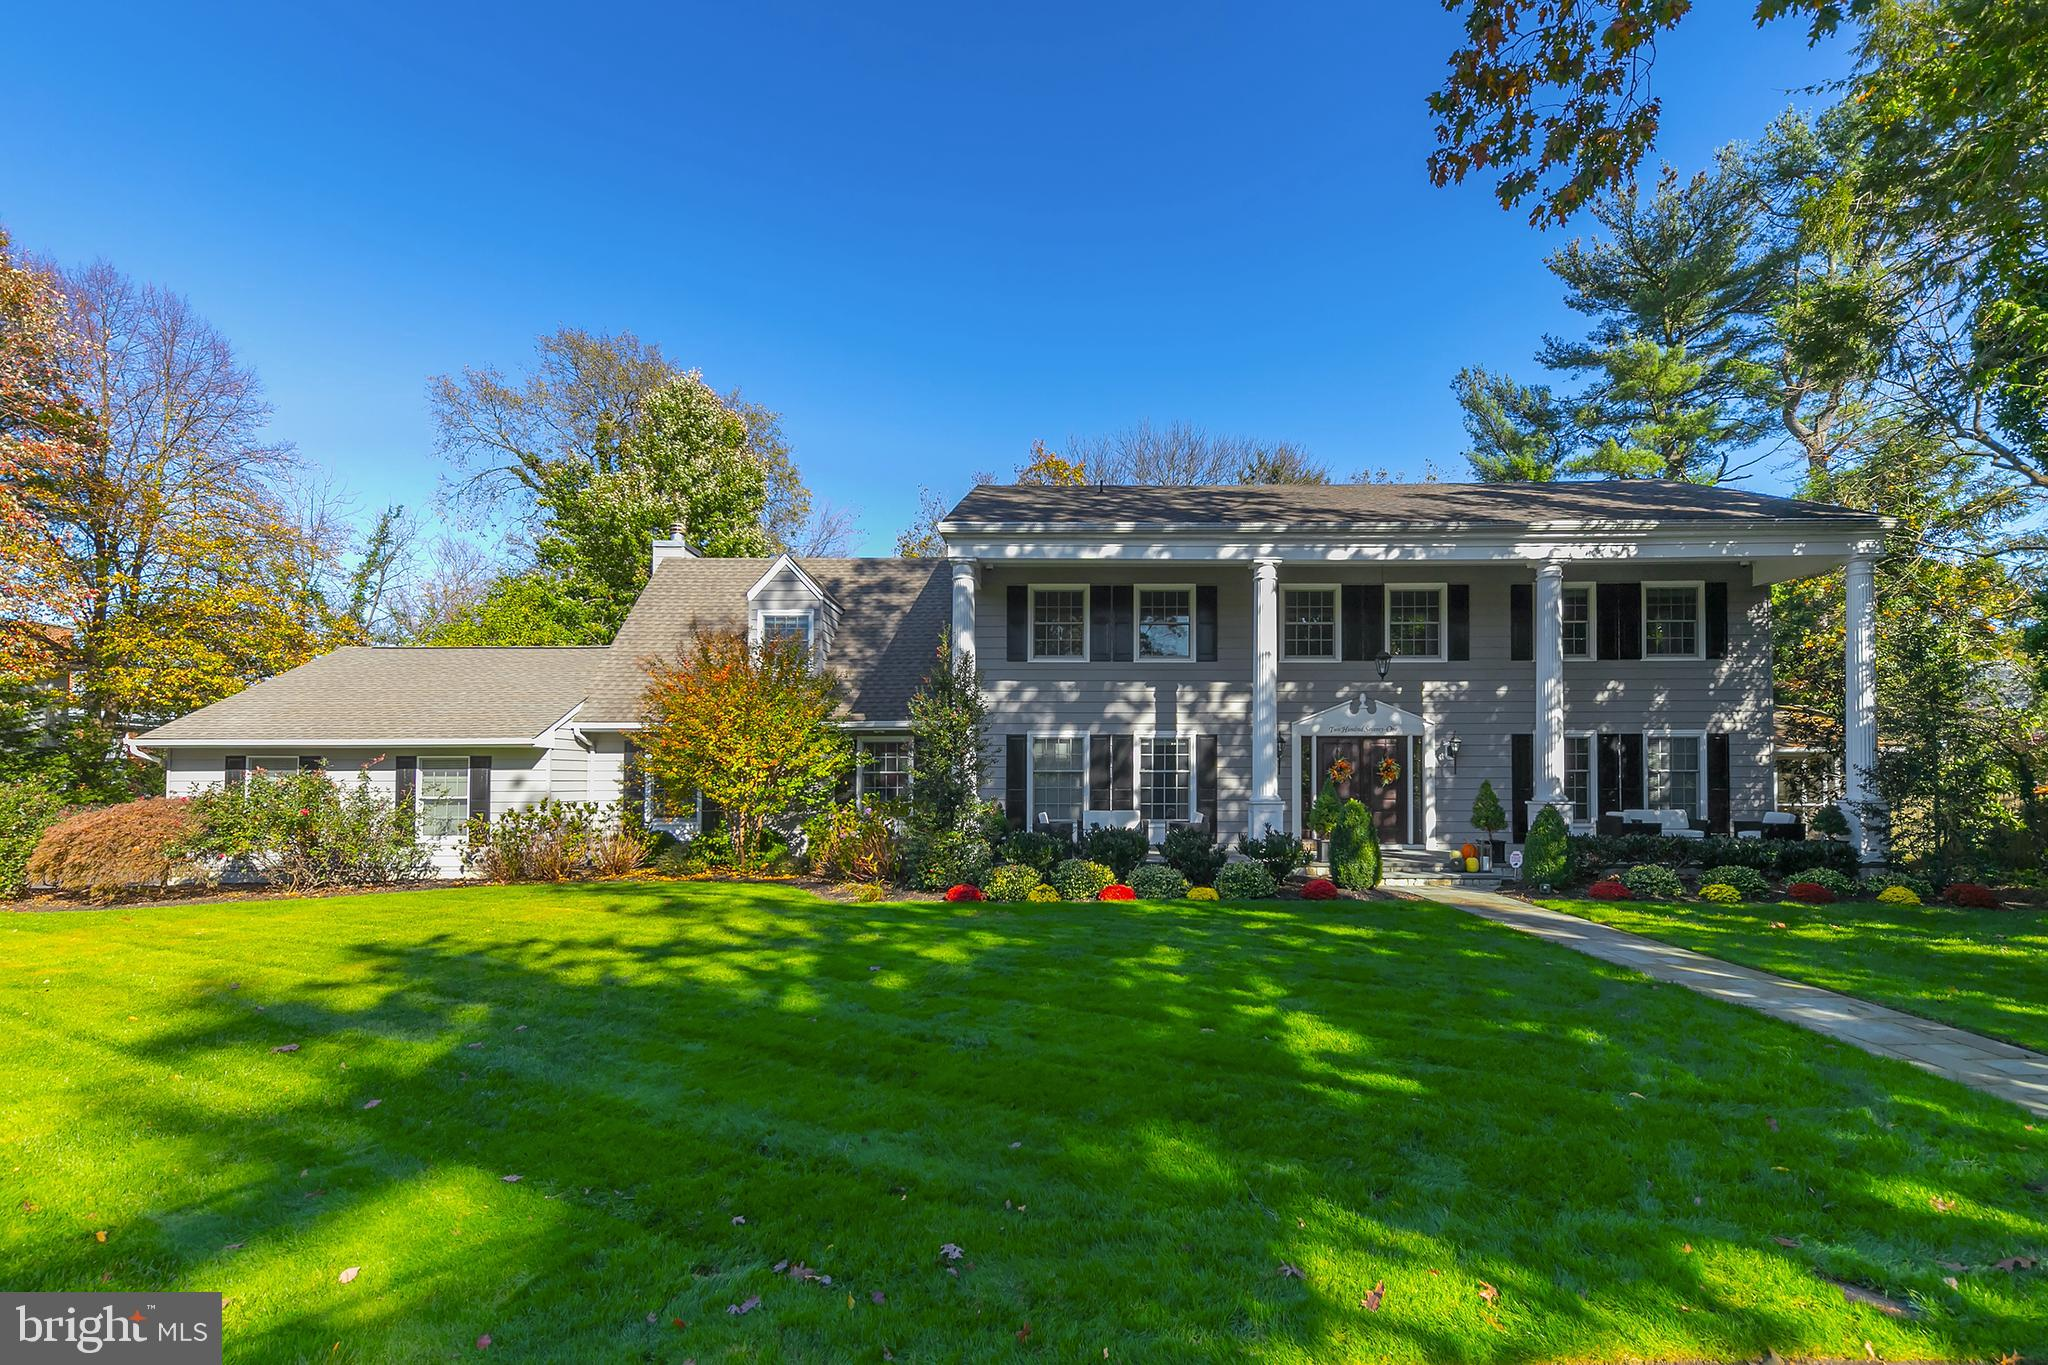 271 Moore Lane, Haddonfield, NJ 08033